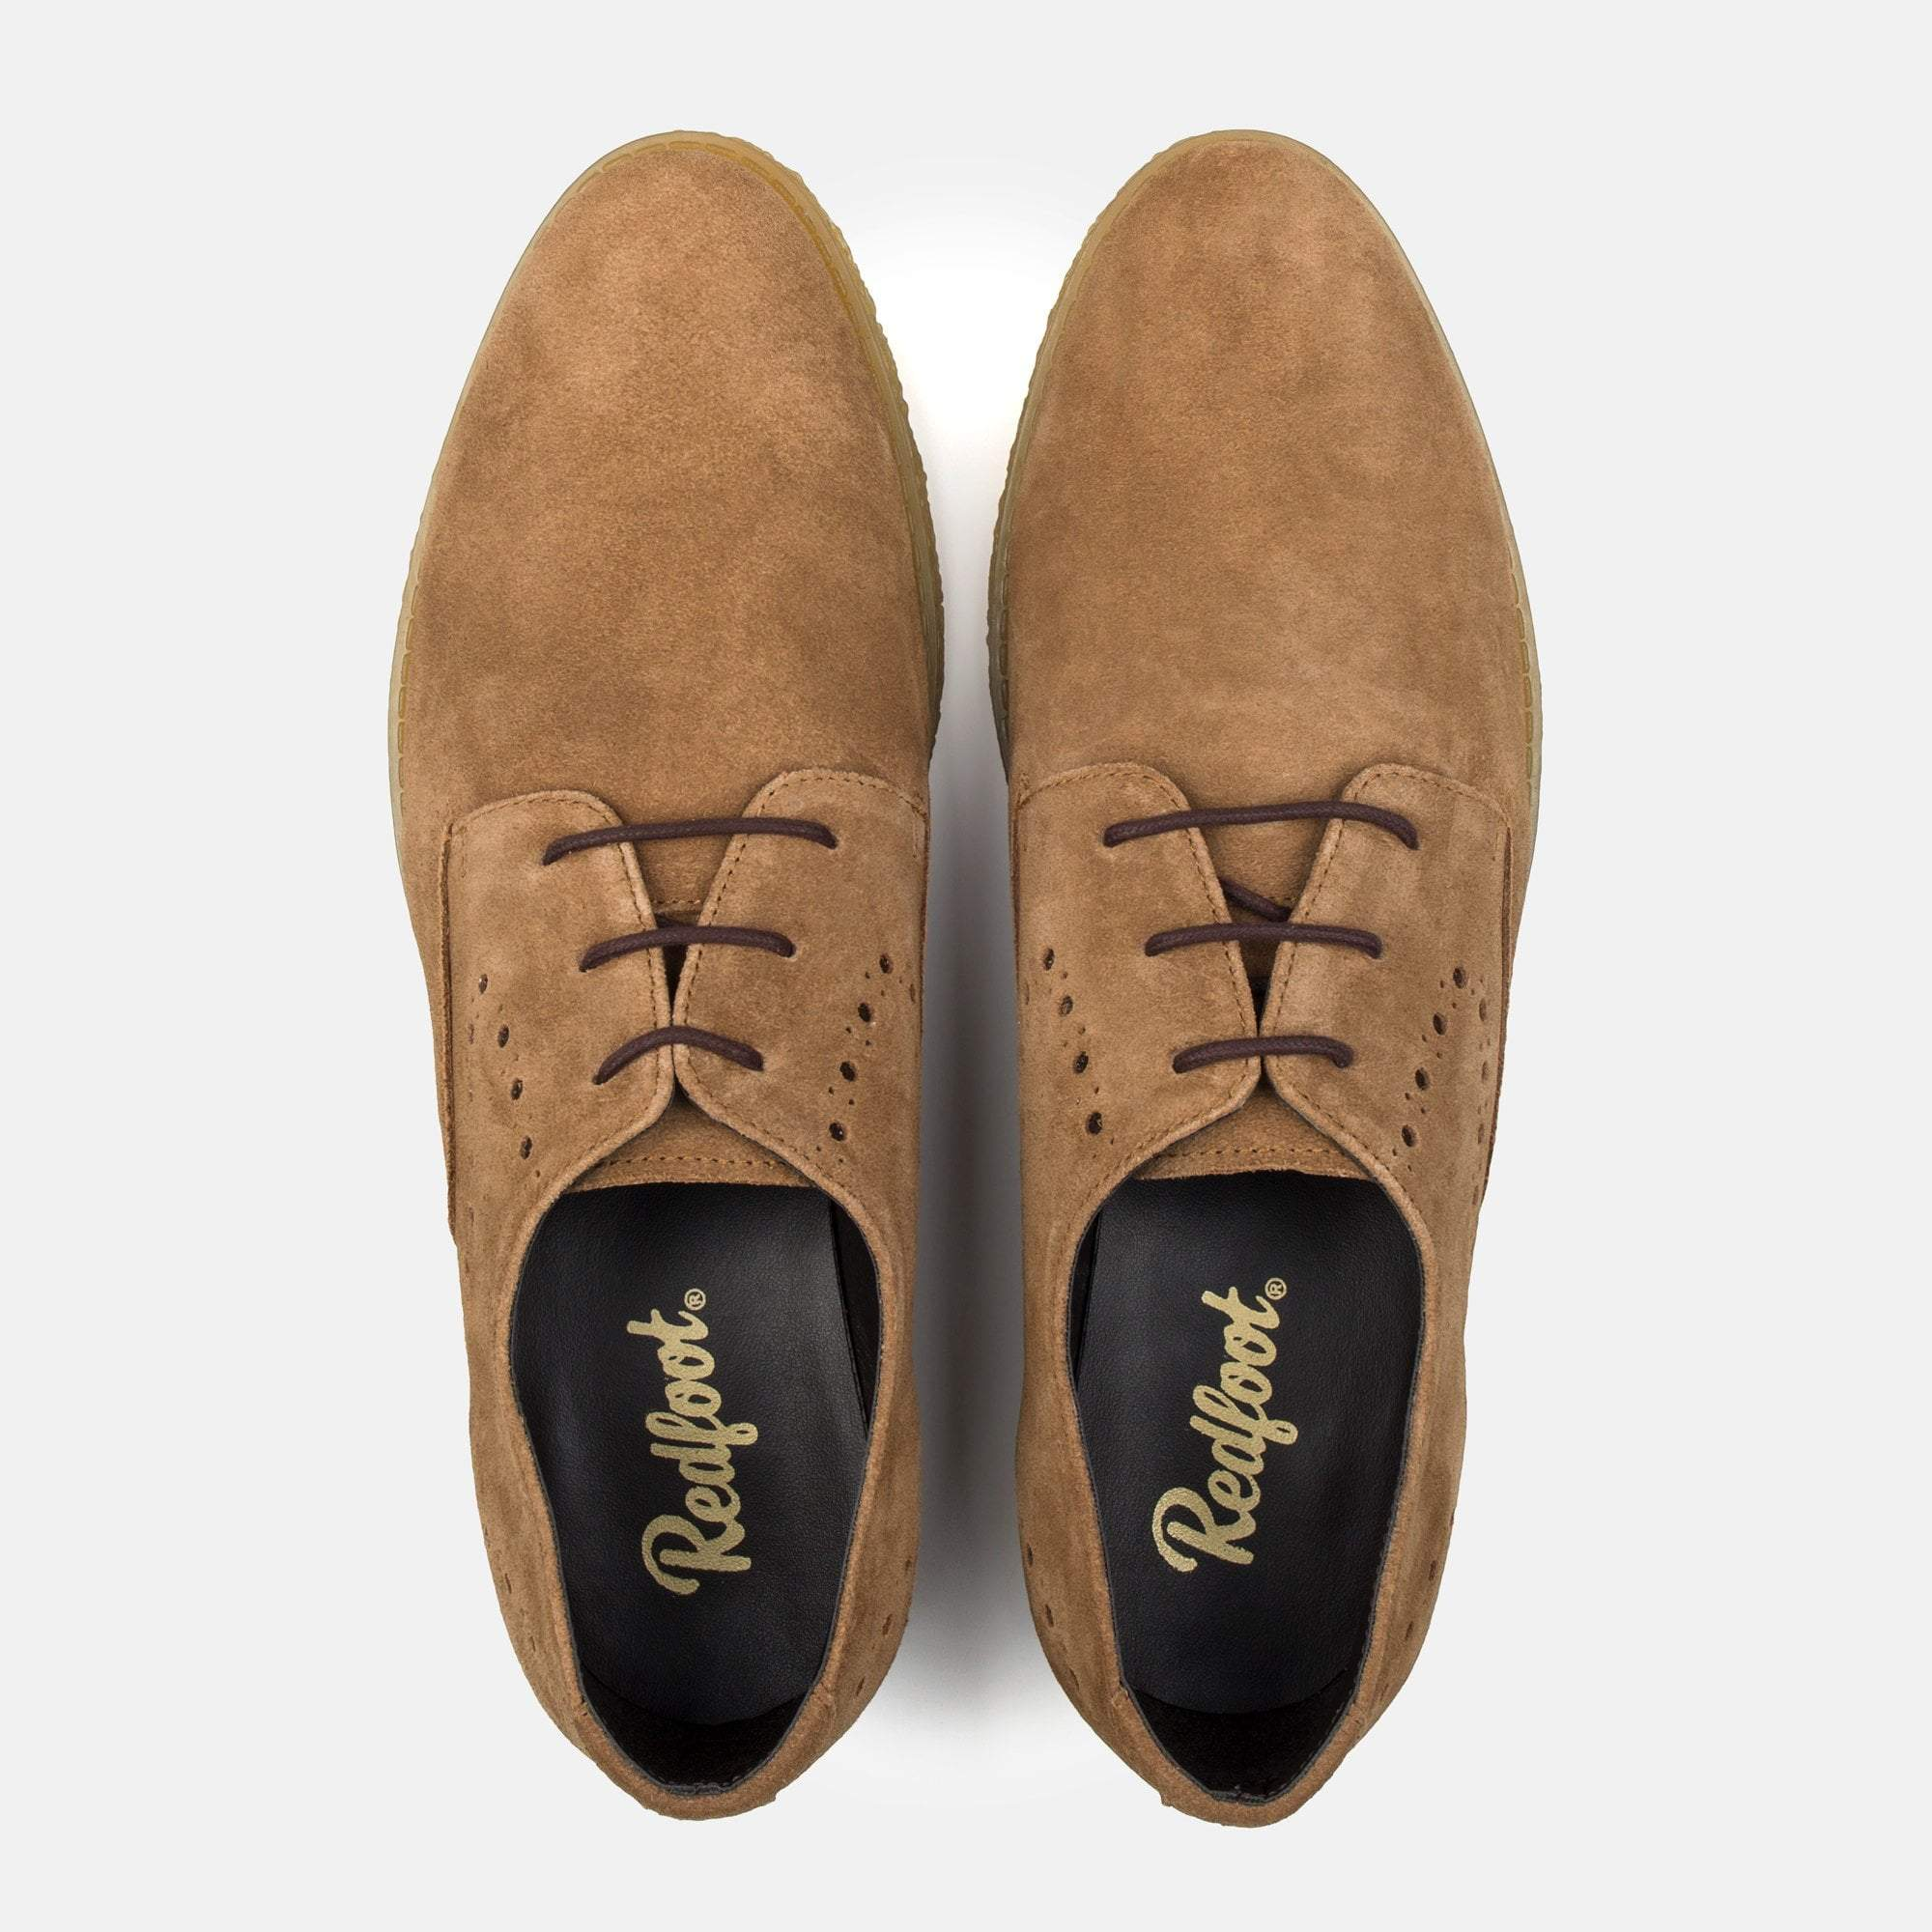 WILSON CHESTNUT SUEDE BROGUE